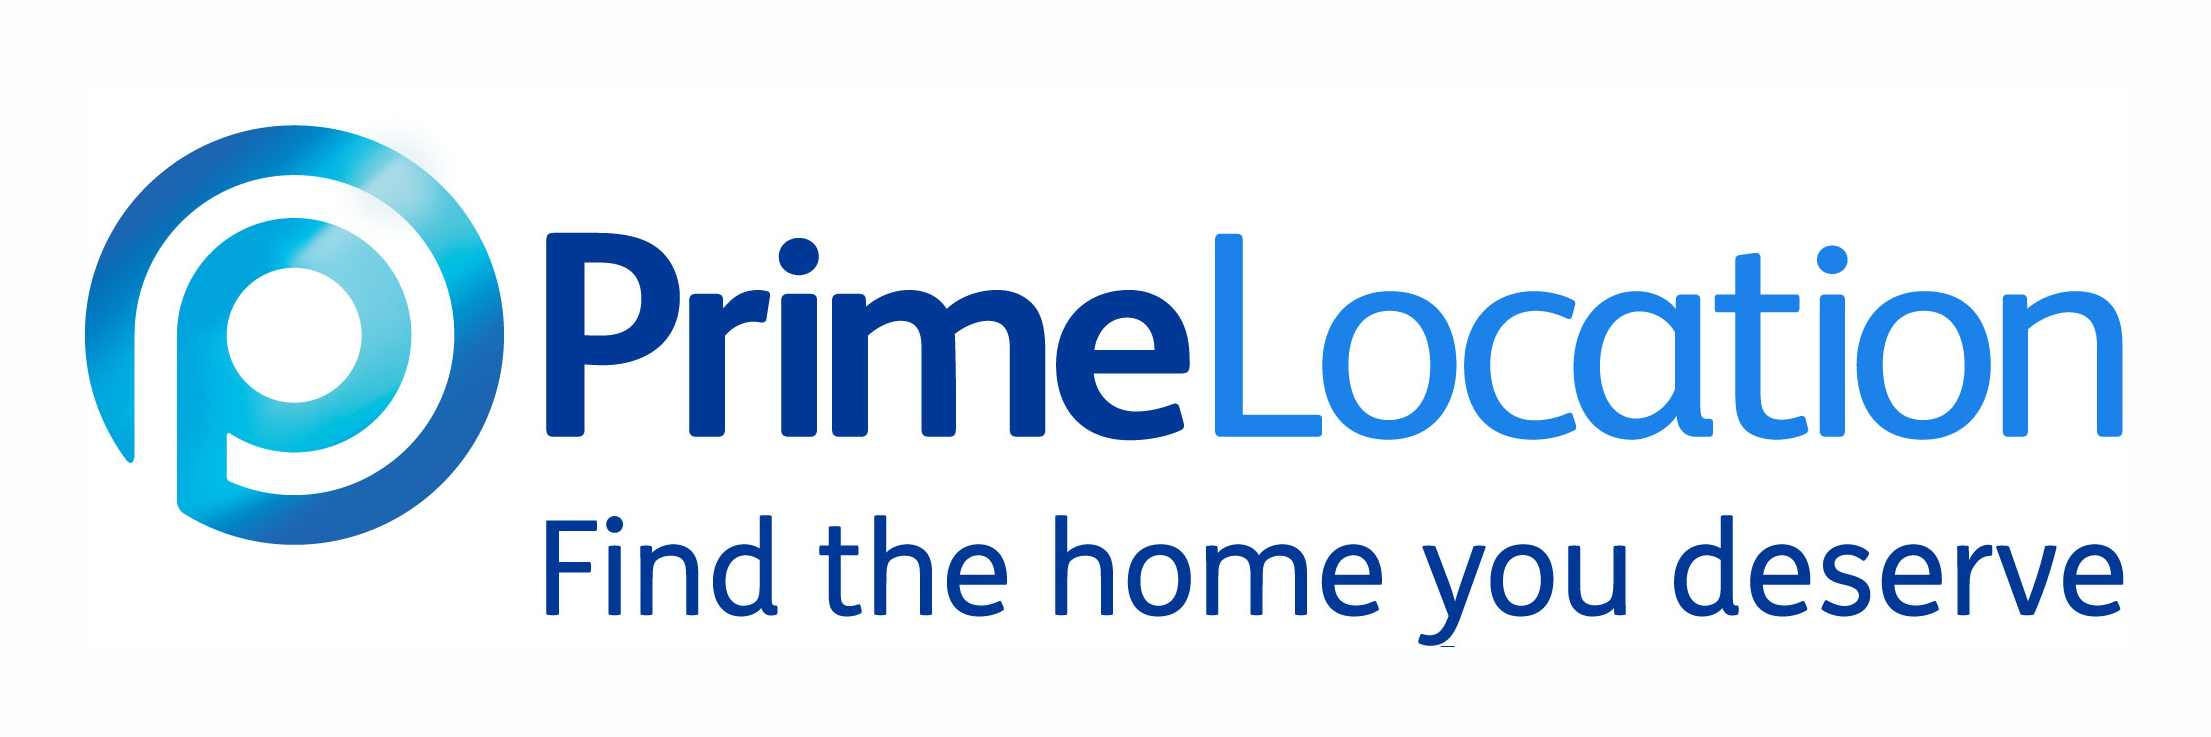 prime-location-logo.jpg